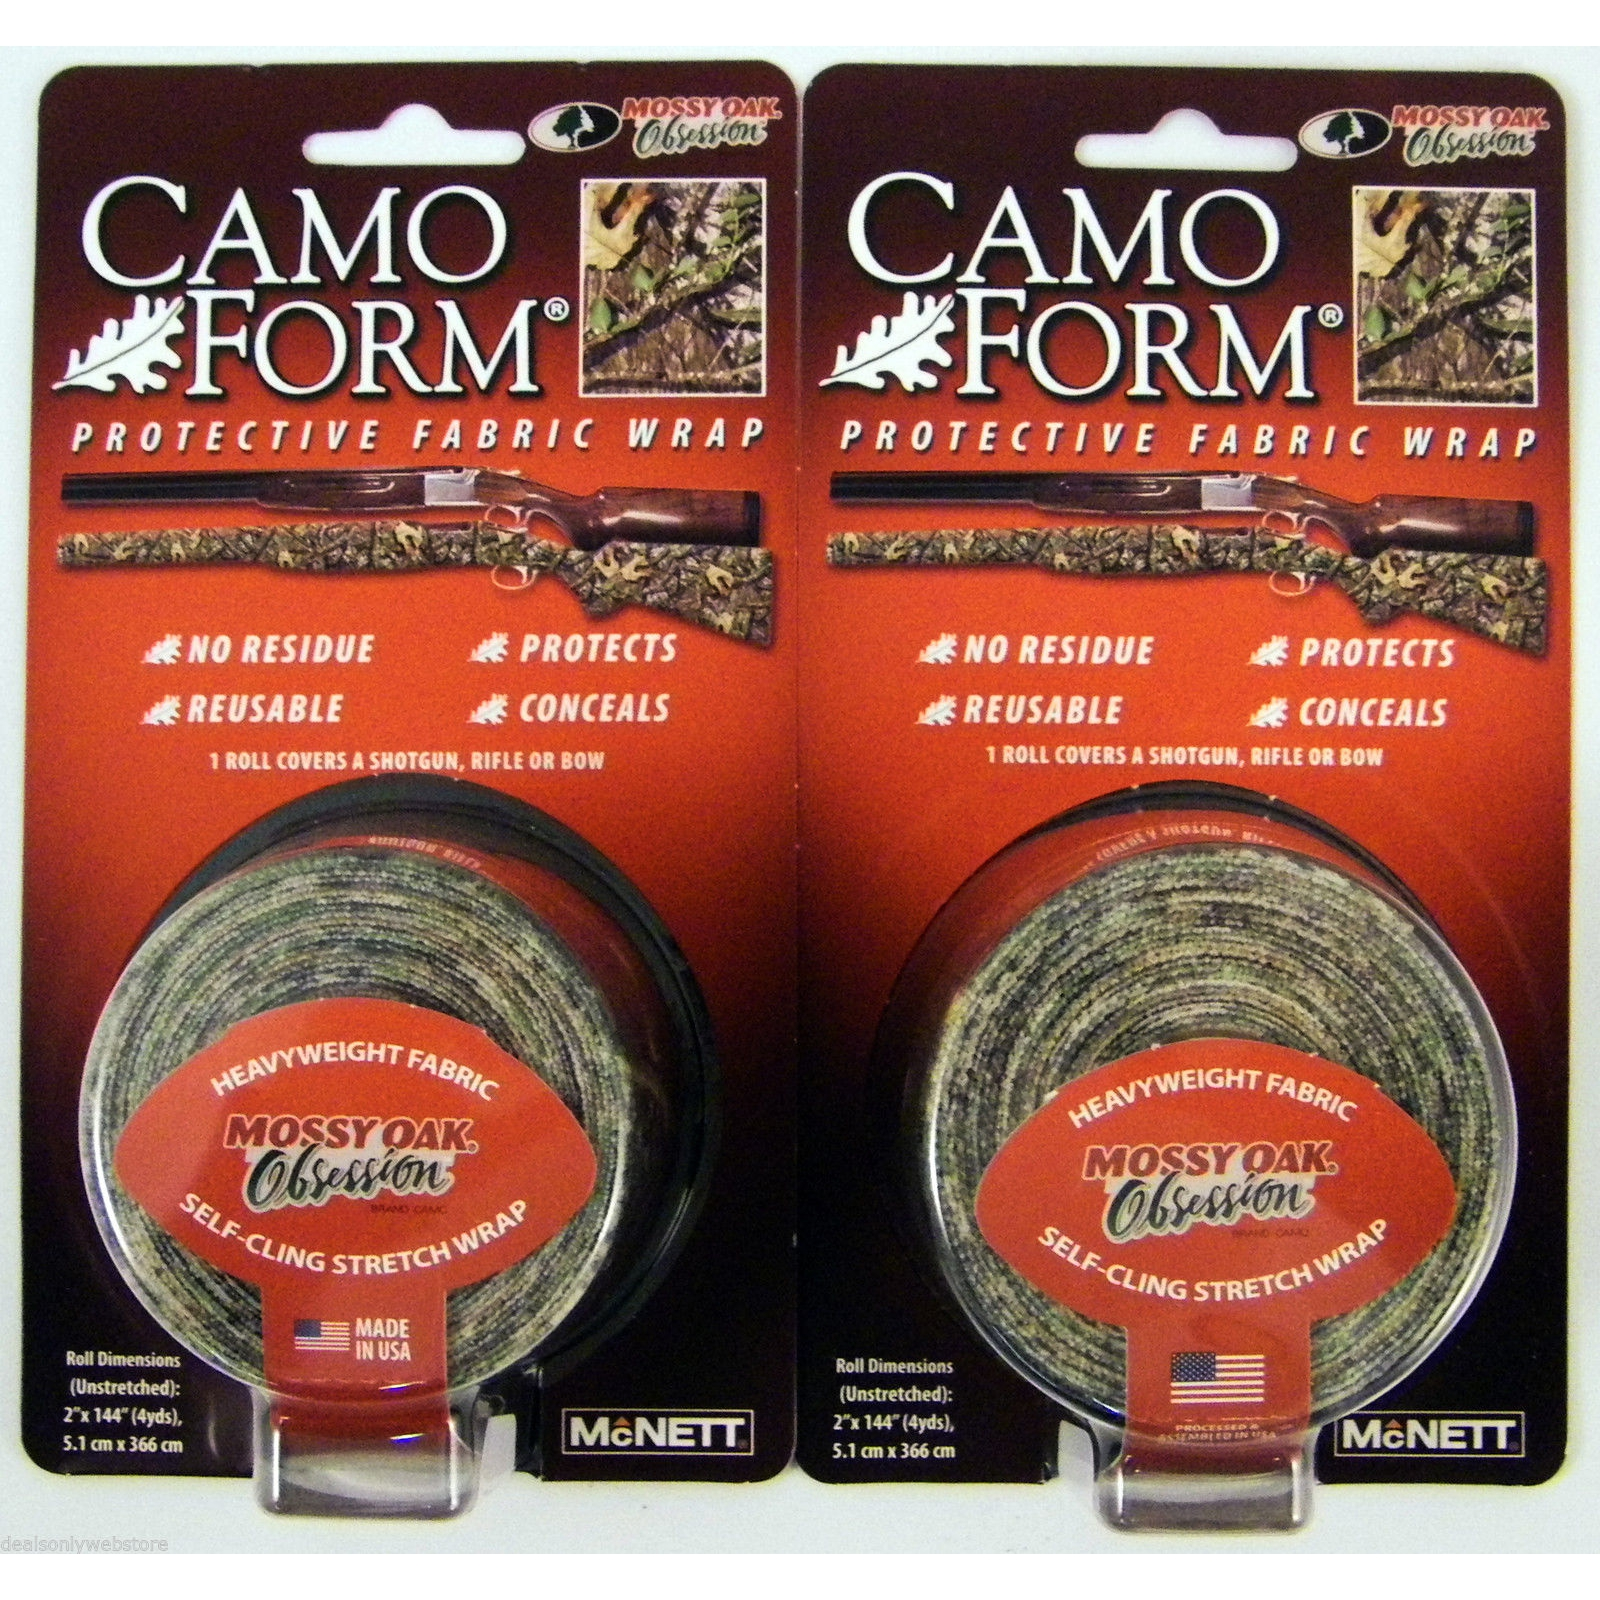 2-PACK Camo Form Mossy Oak Obsession Camouflage Gear Wrap Protective Cling Tape